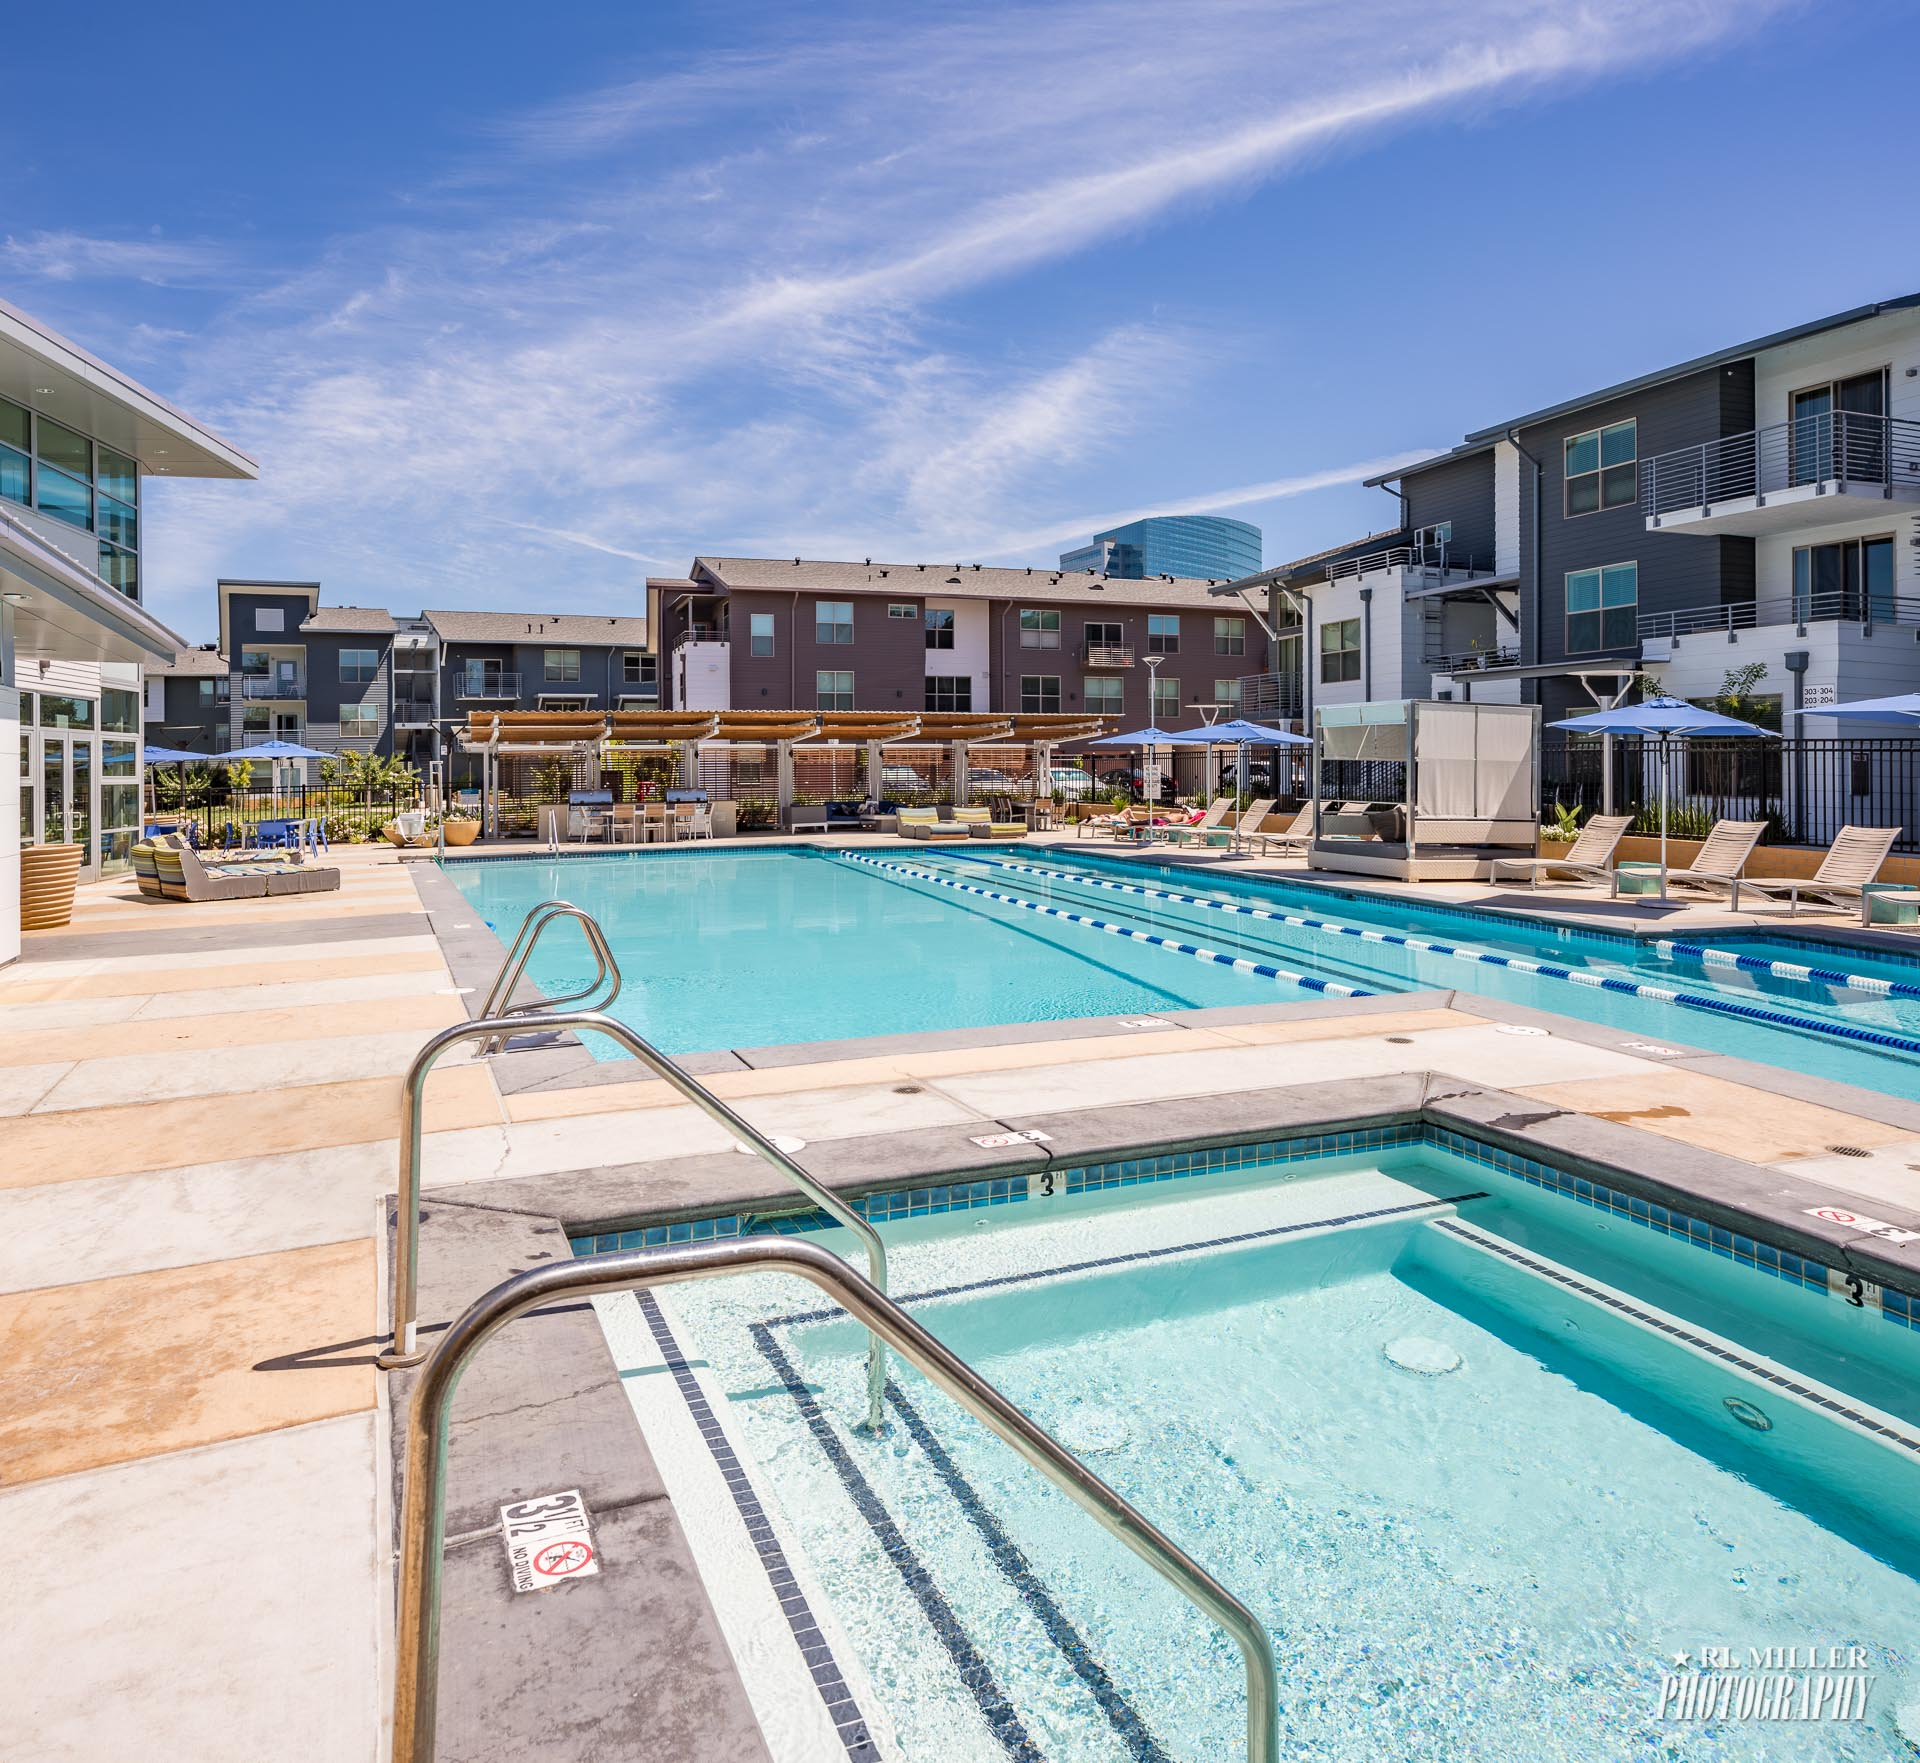 Copper Canyon Apartments: *RL Miller Photography*RL